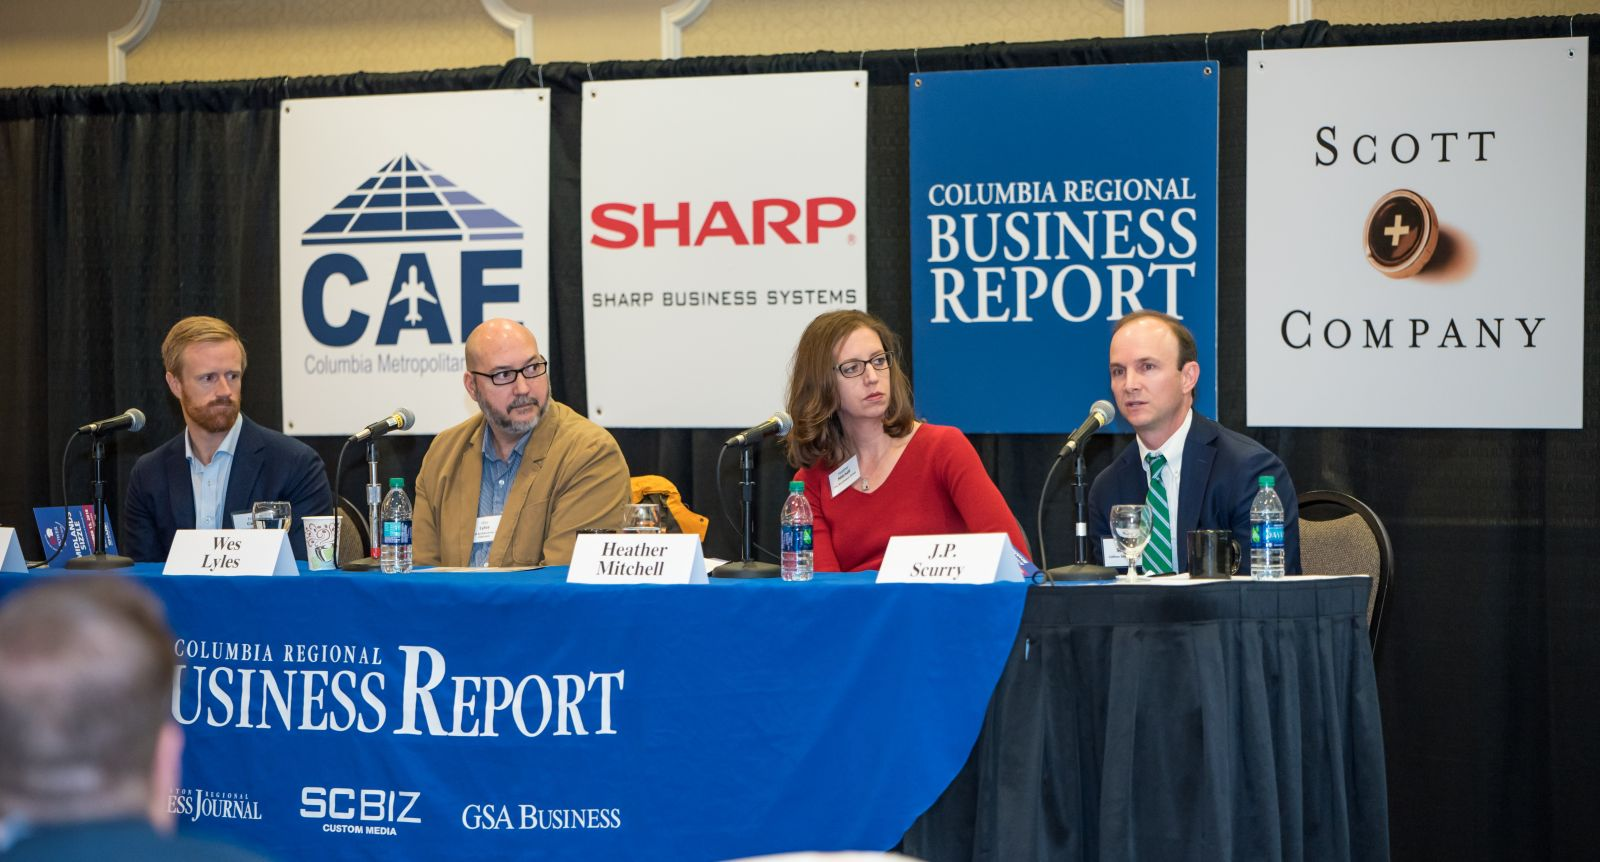 Power Breakfast panelists (left to right) Frank Cason, Wes Lyles, Heather Mitchell and J.P. Scurry discuss area growth opportunities and challenges. (Photo/Kathy Allen)